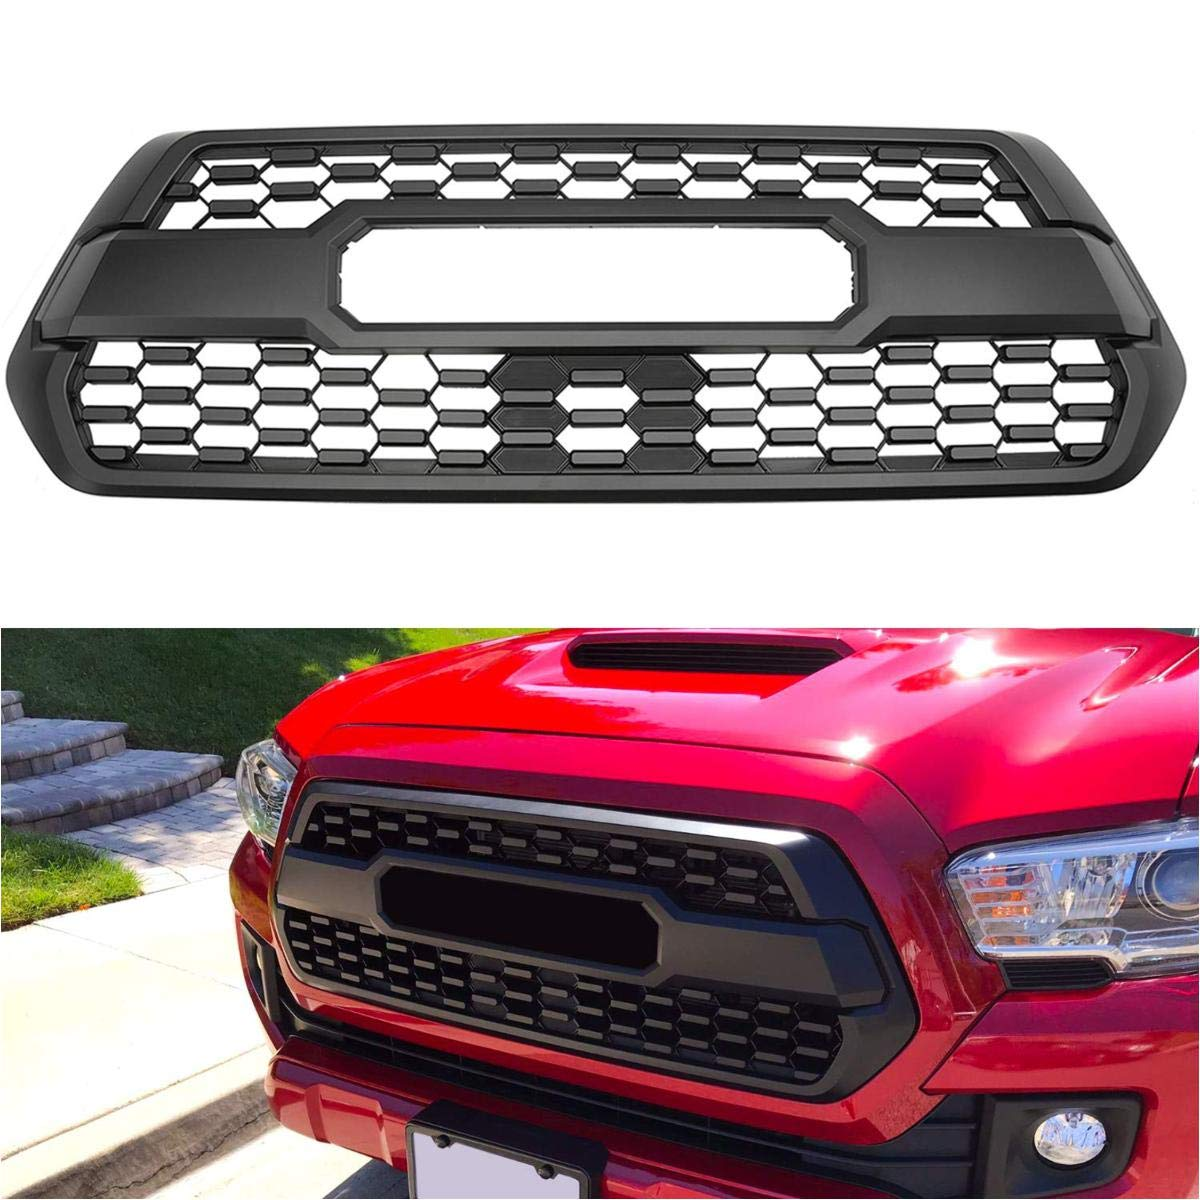 MGPRO 1pcs Black Honeycomb Mesh Front Bumper Hood ABS Plastic Grille For 2016-2019 Toyota Tacoma